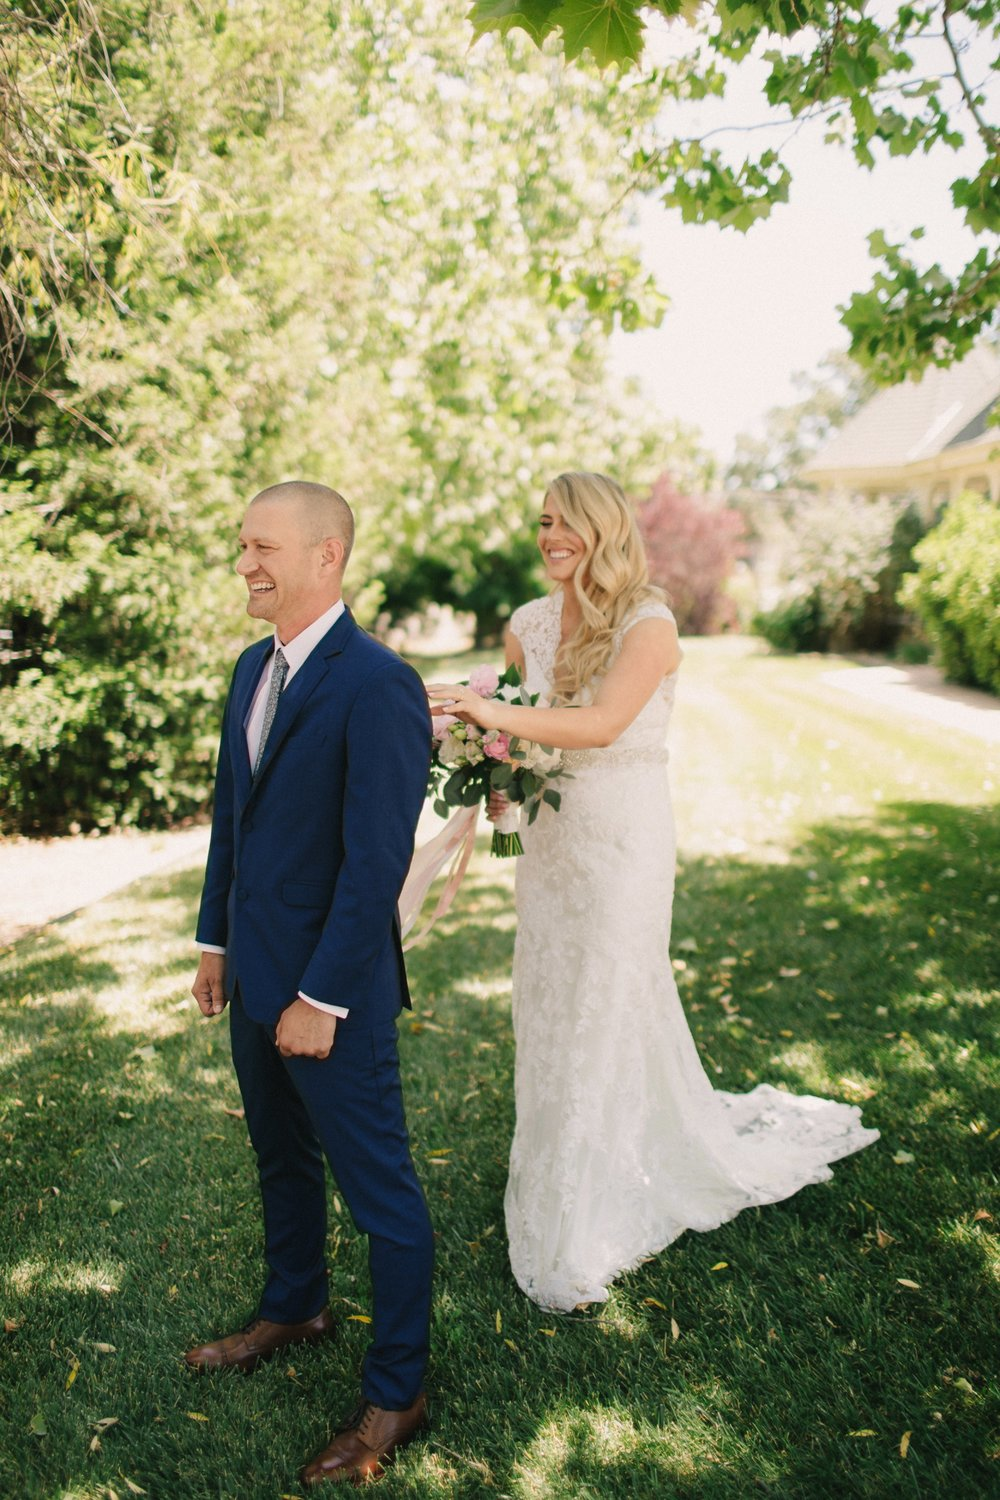 CaliforniaWedding|LindenCloverPhotography_0007.jpg